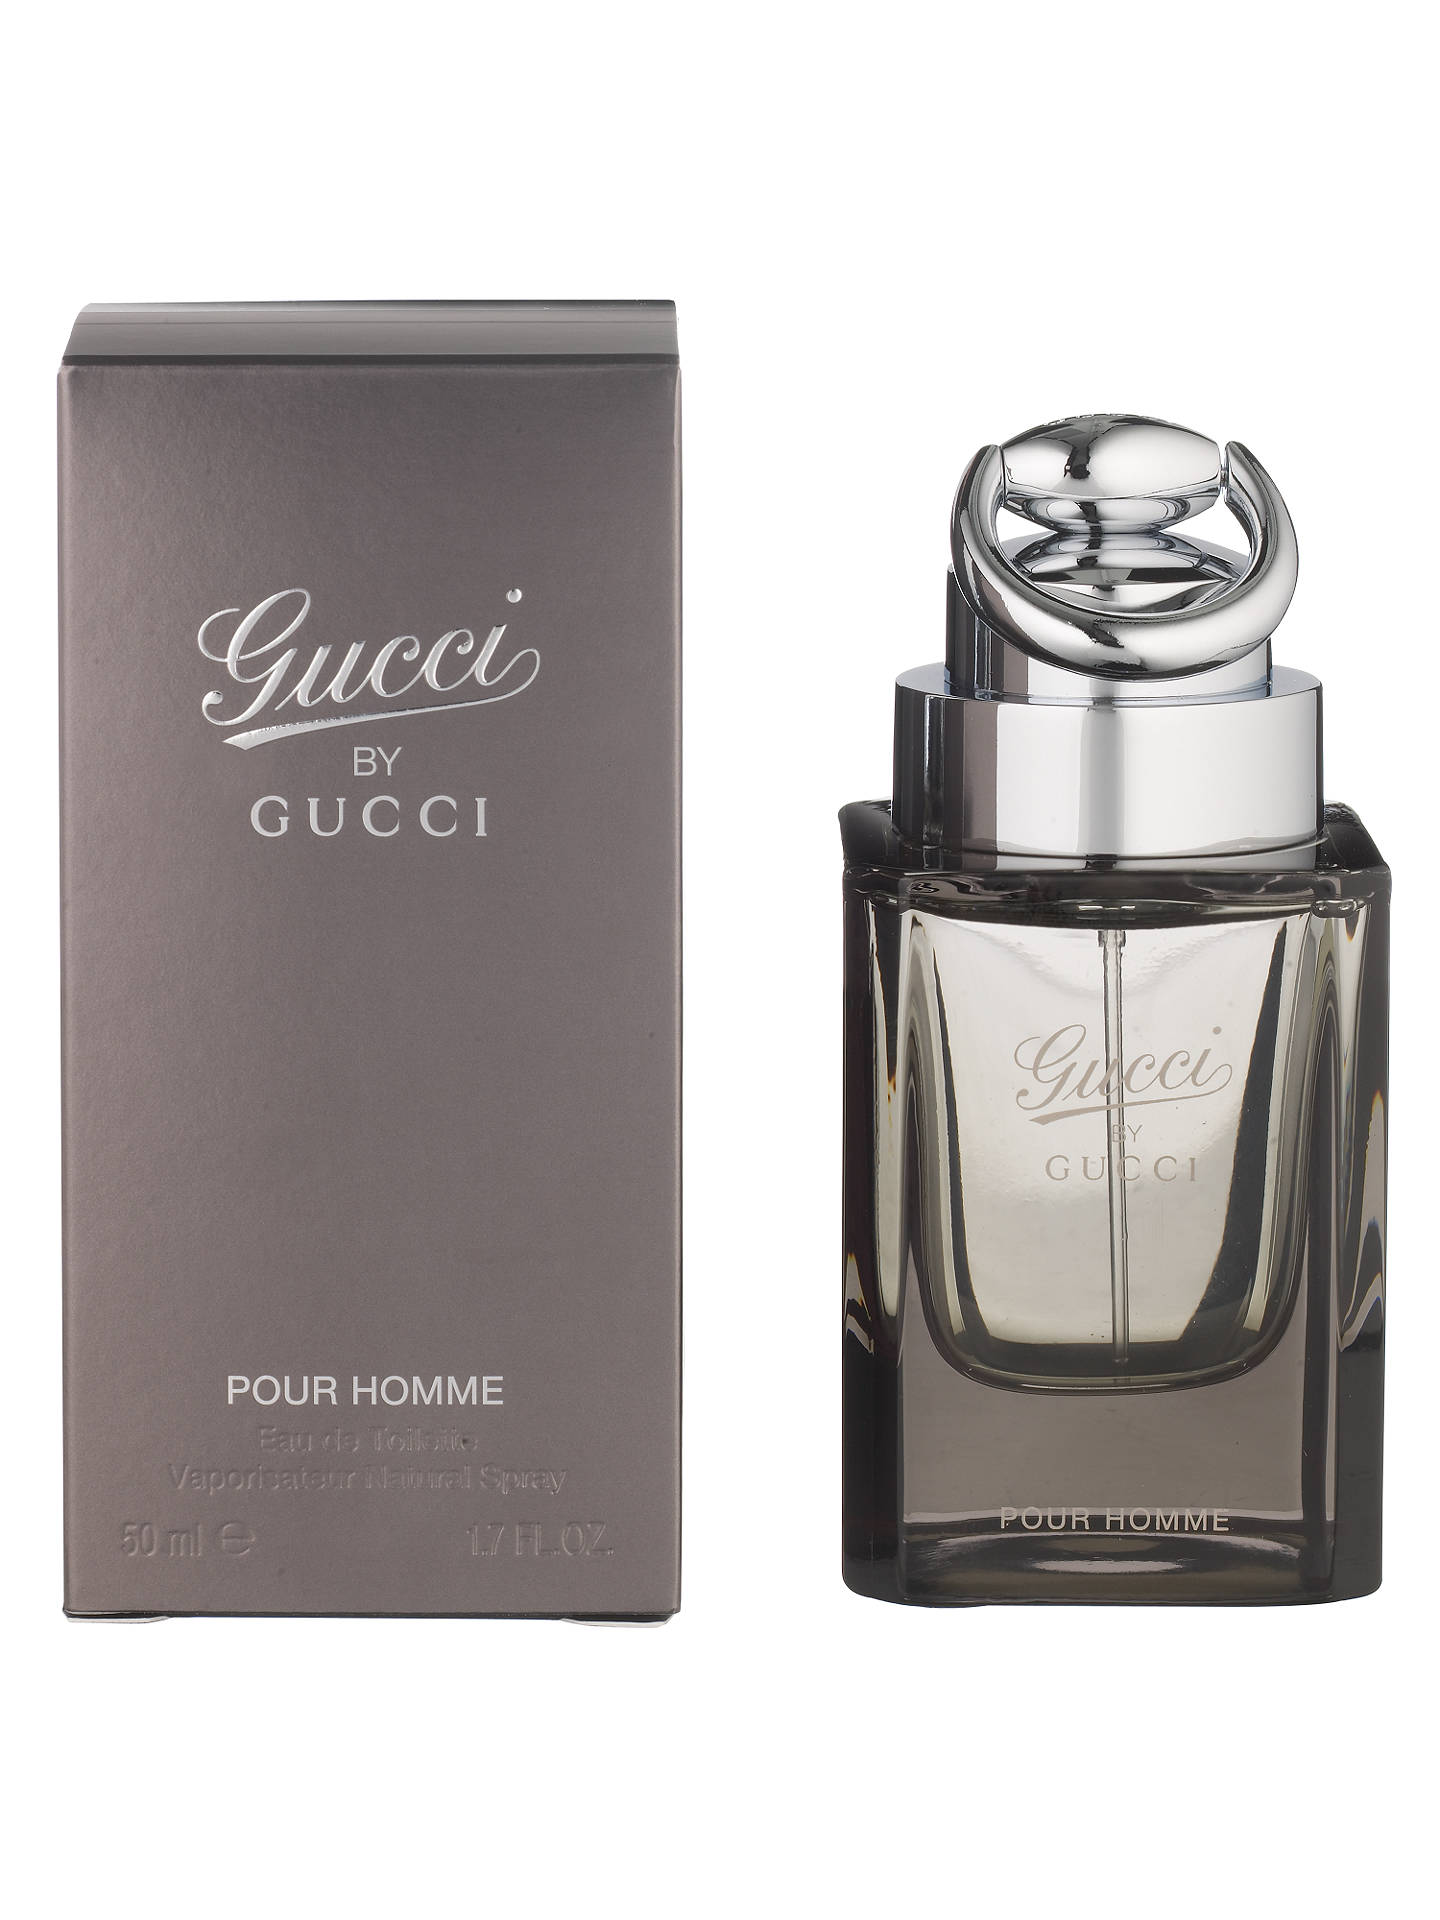 5e3208b35cb Gucci by Gucci Pour Homme Eau de Toilette at John Lewis   Partners